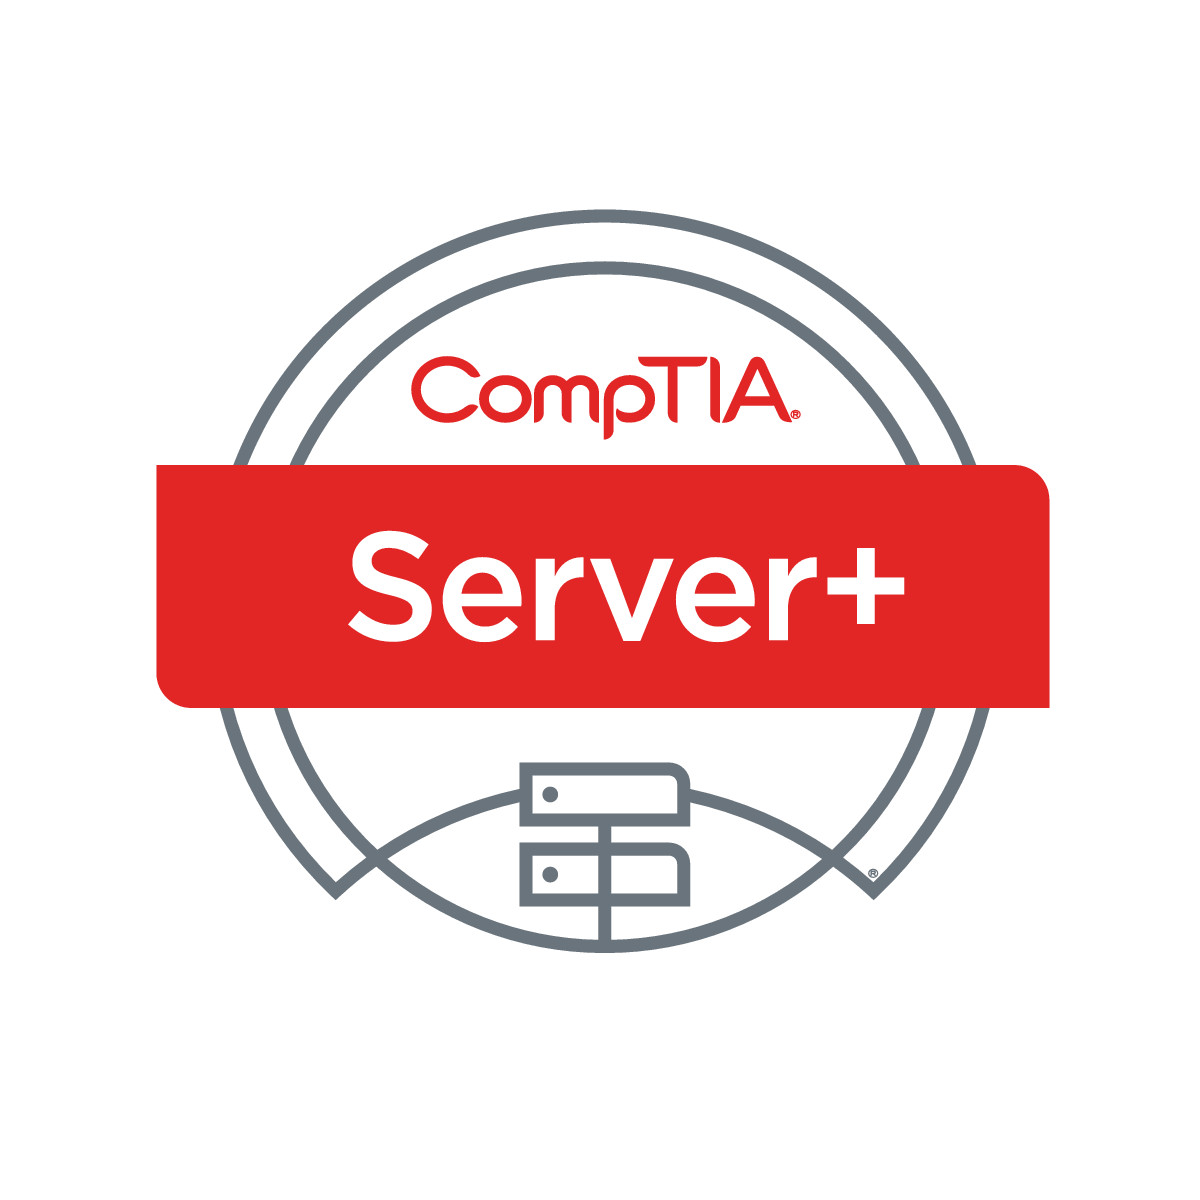 CompTIA Server+ (SK0-005) – Updated 2021